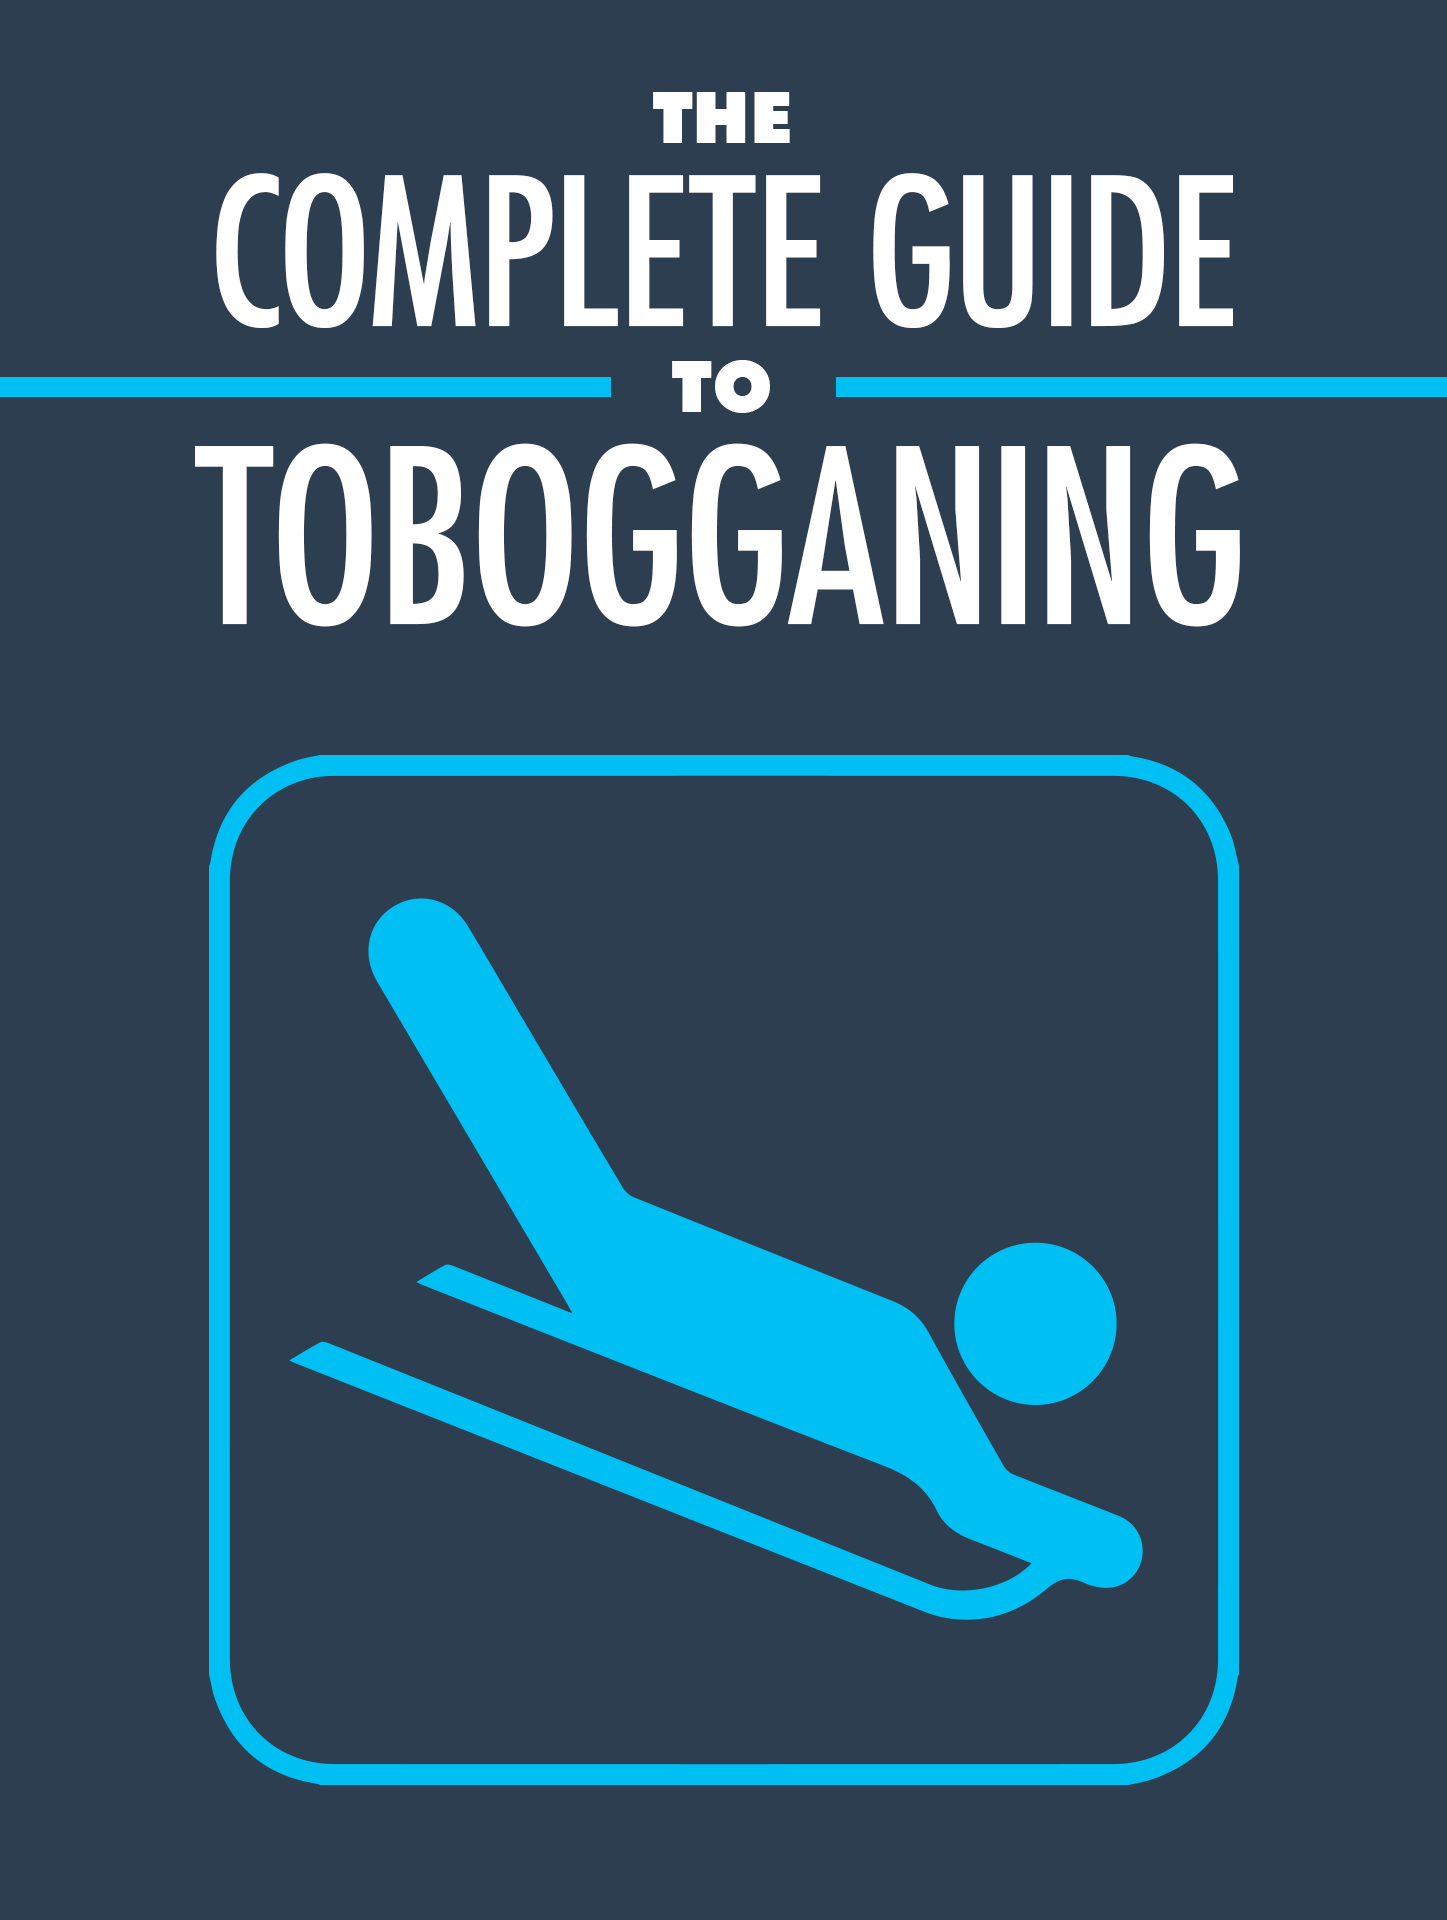 Complete Guide To Tobogganing